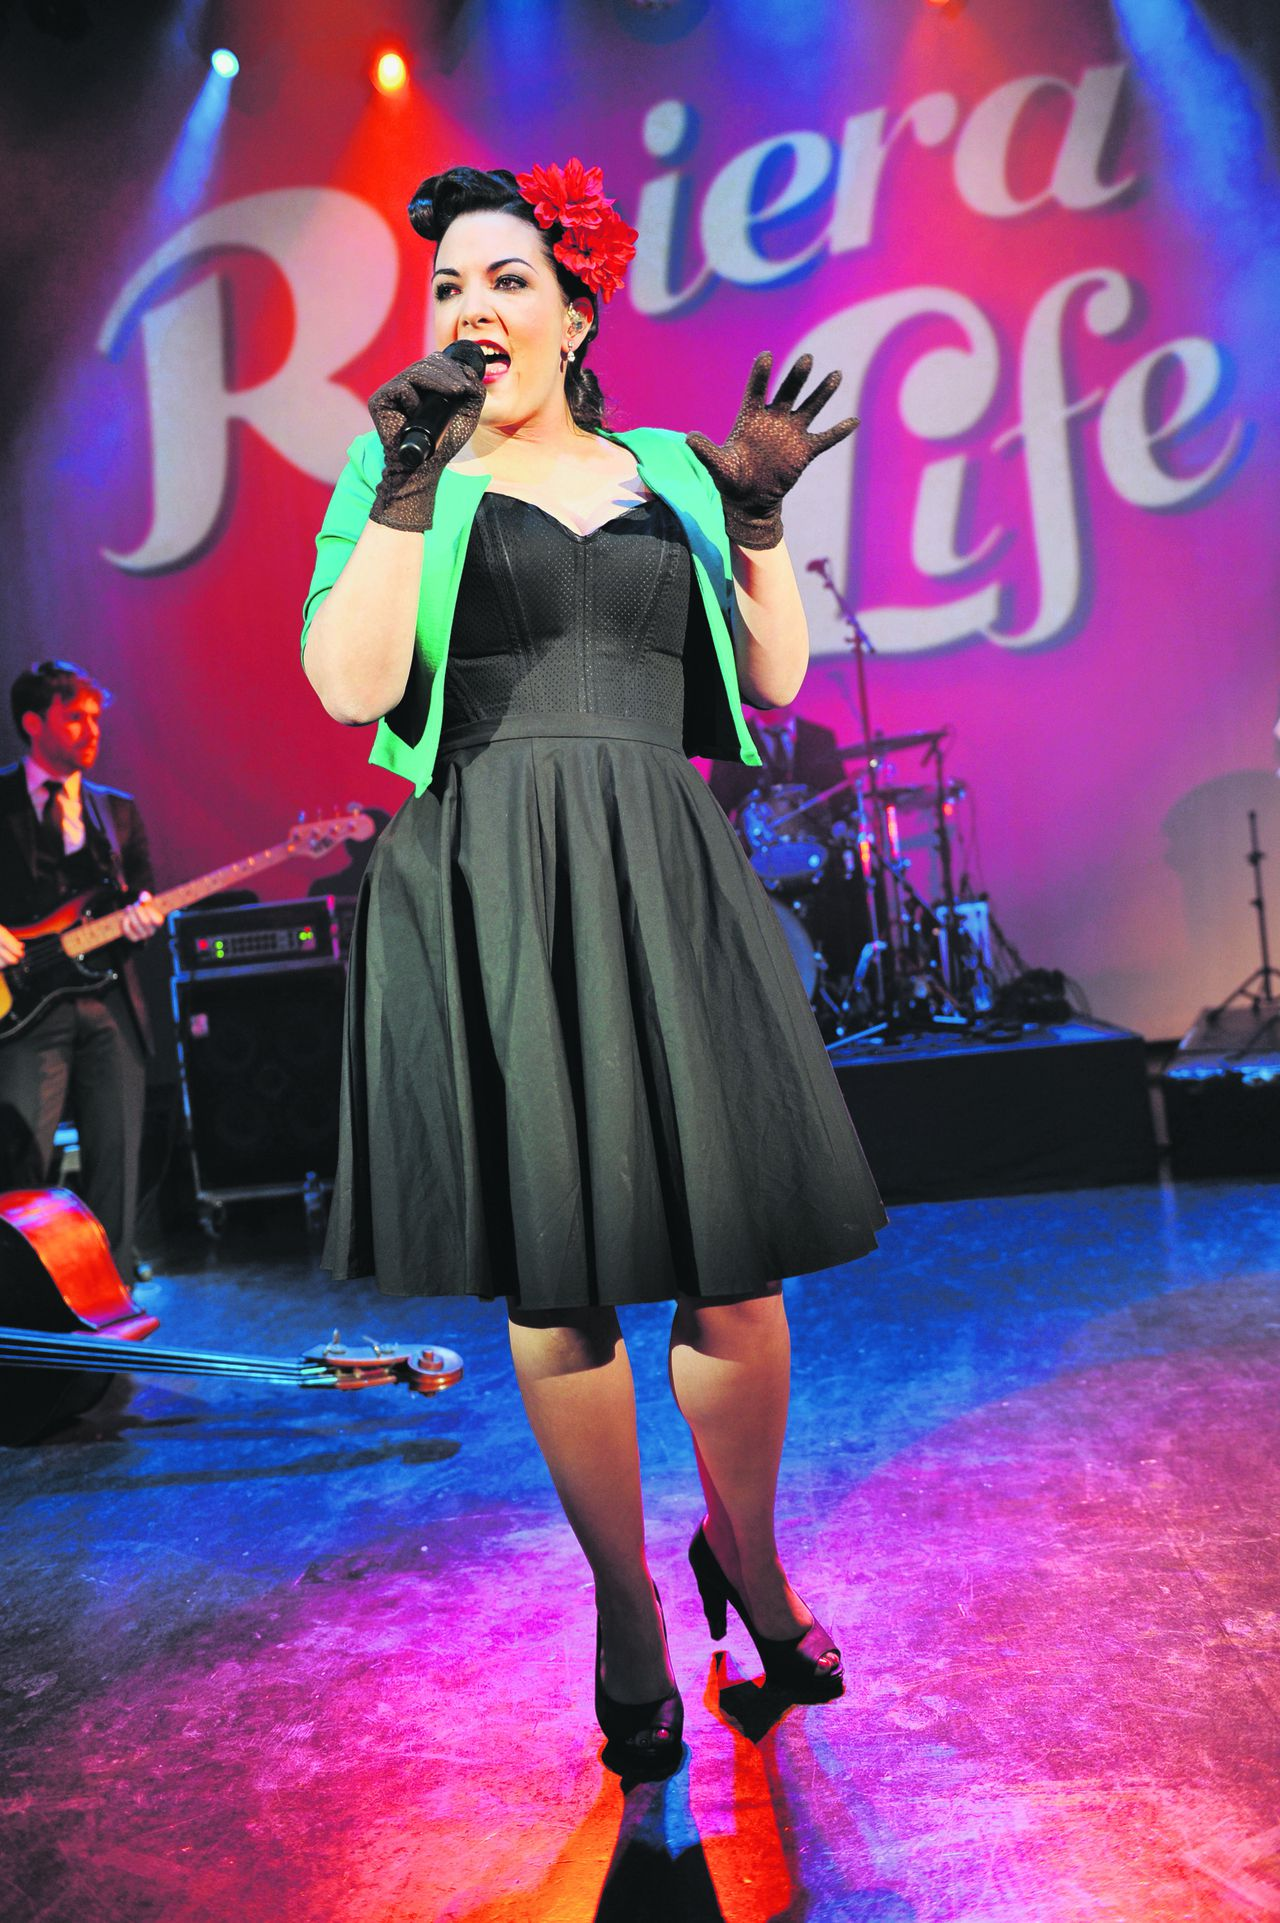 LONDON, UNITED KINGDOM - DECEMBER 13: Caro Emerald performs on stage at Shepherds Bush Empire on December 13, 2011 in London, United Kingdom. (Photo by C Brandon/Redferns)